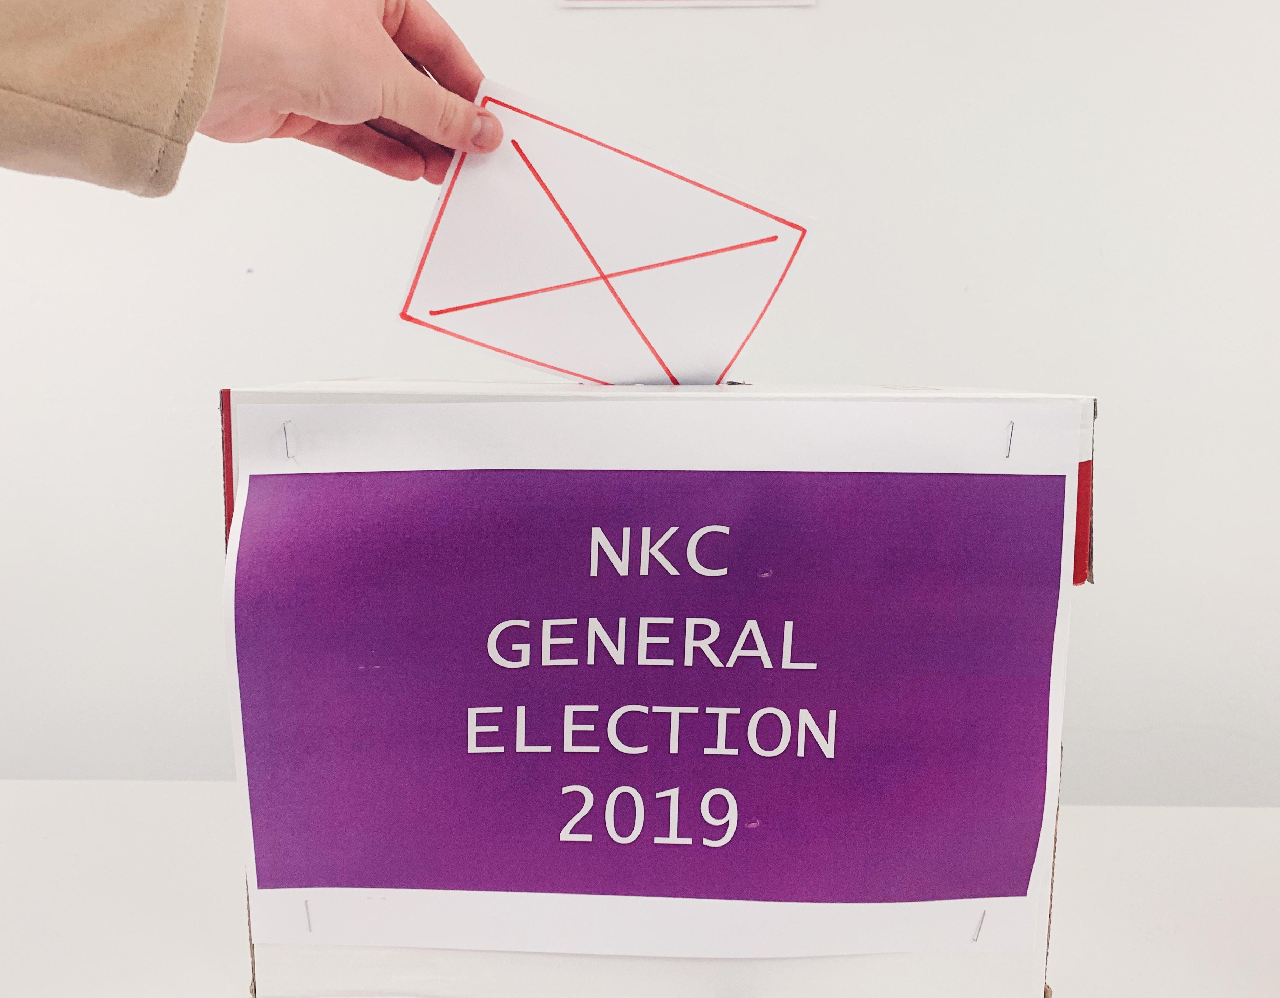 Picture of NKC General Election 2019